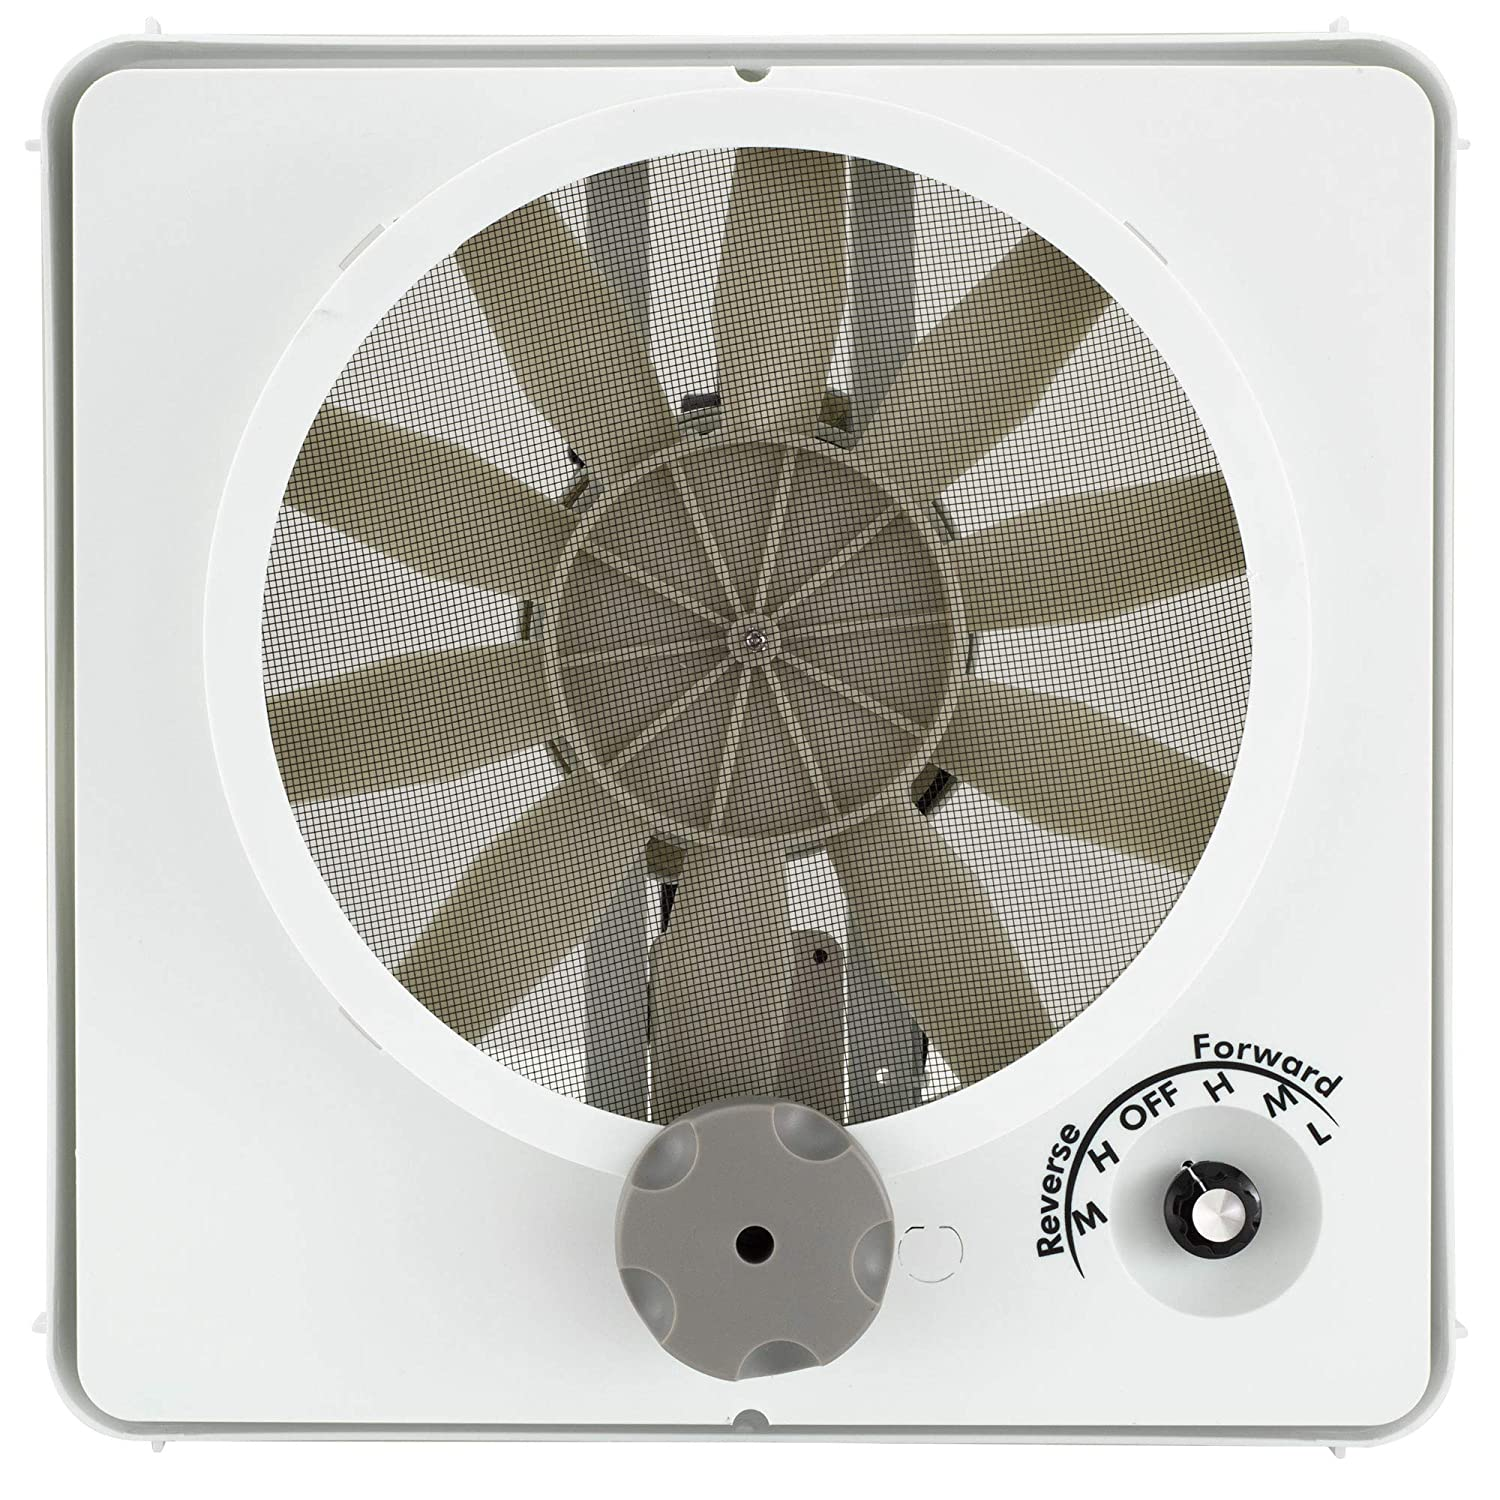 Vortex Ii Vent Fan Upgrade on